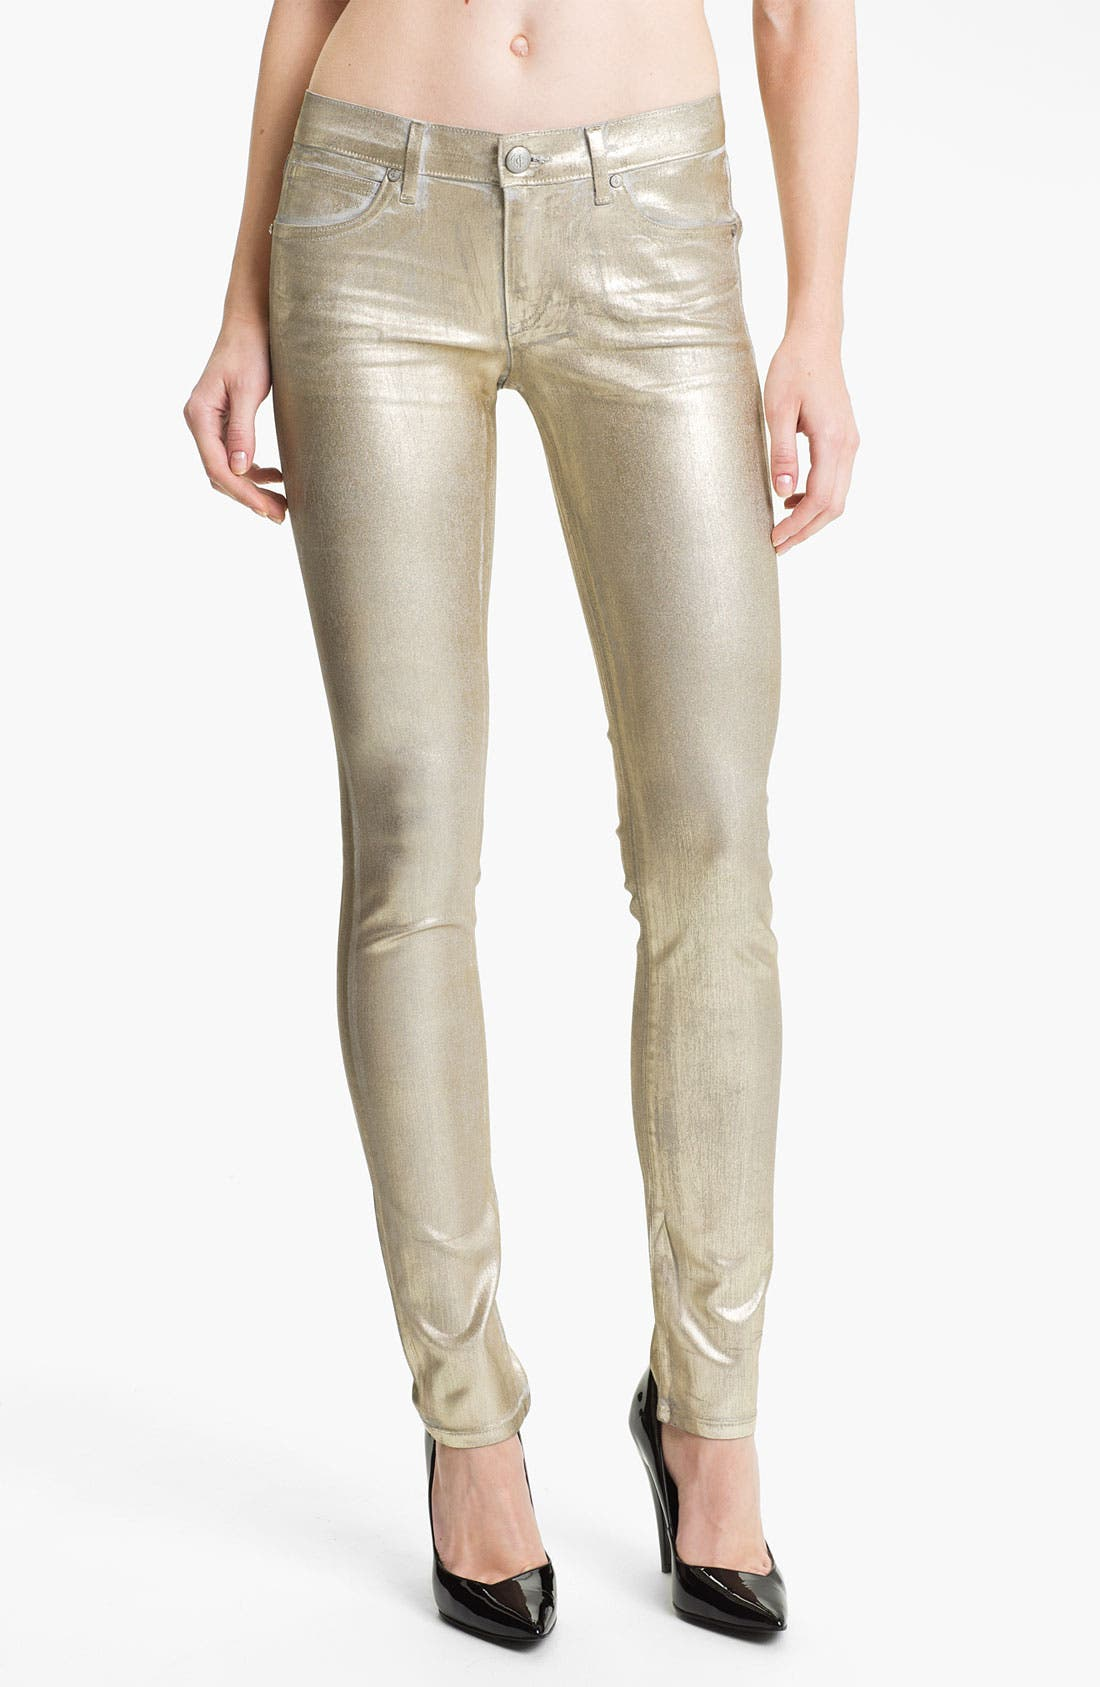 Main Image - Juicy Couture Metallic Coated Skinny Jeans (Gold Saturated Foil)